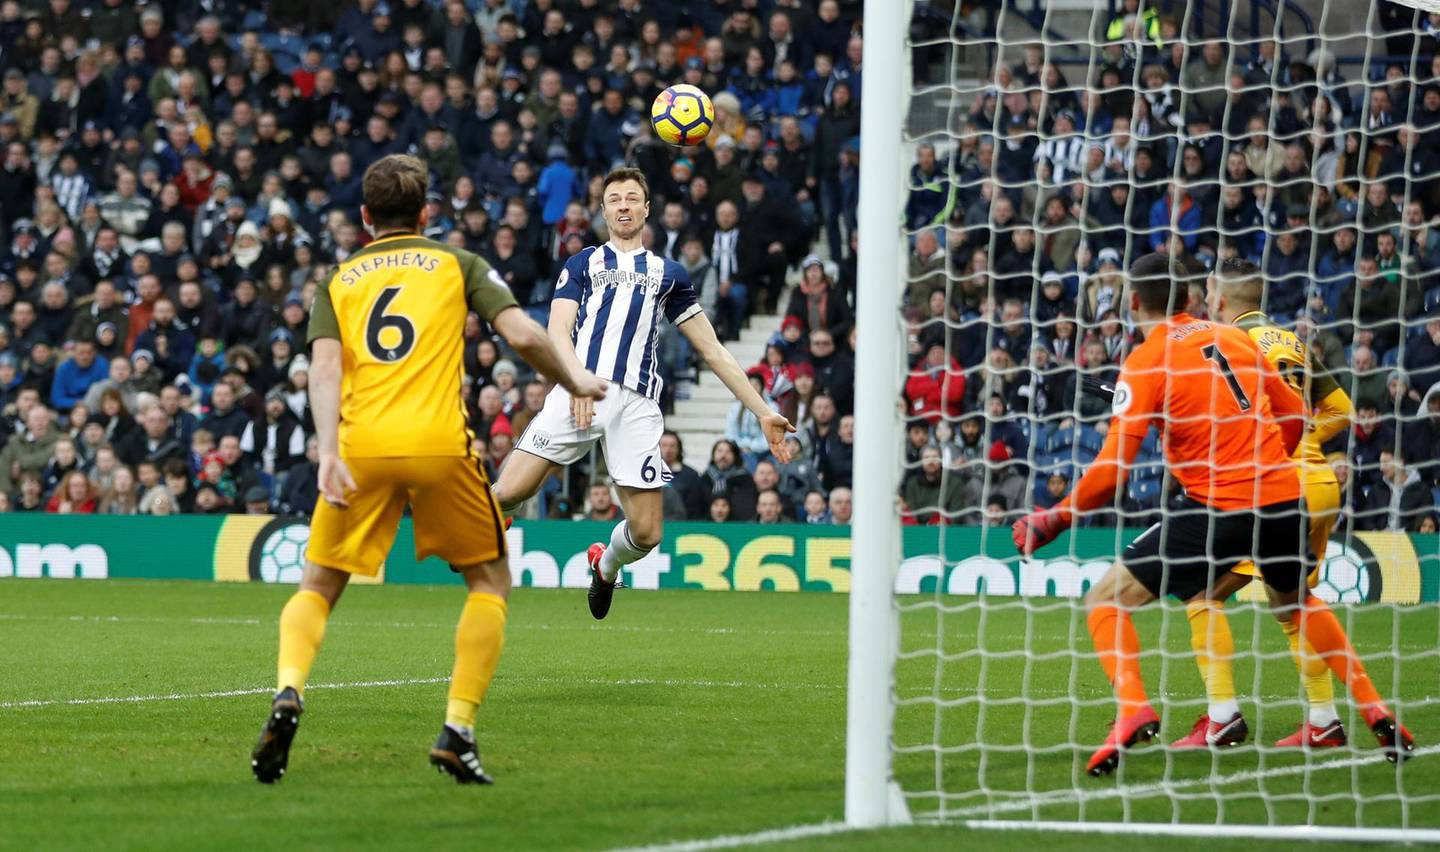 """Soccer Football - Premier League - West Bromwich Albion vs Brighton & Hove Albion - The Hawthorns, West Bromwich, Britain - January 13, 2018   West Bromwich Albion's Jonny Evans scores their first goal    Action Images via Reuters/Carl Recine    EDITORIAL USE ONLY. No use with unauthorized audio, video, data, fixture lists, club/league logos or """"live"""" services. Online in-match use limited to 75 images, no video emulation. No use in betting, games or single club/league/player publications.  Please contact your account representative for further details."""